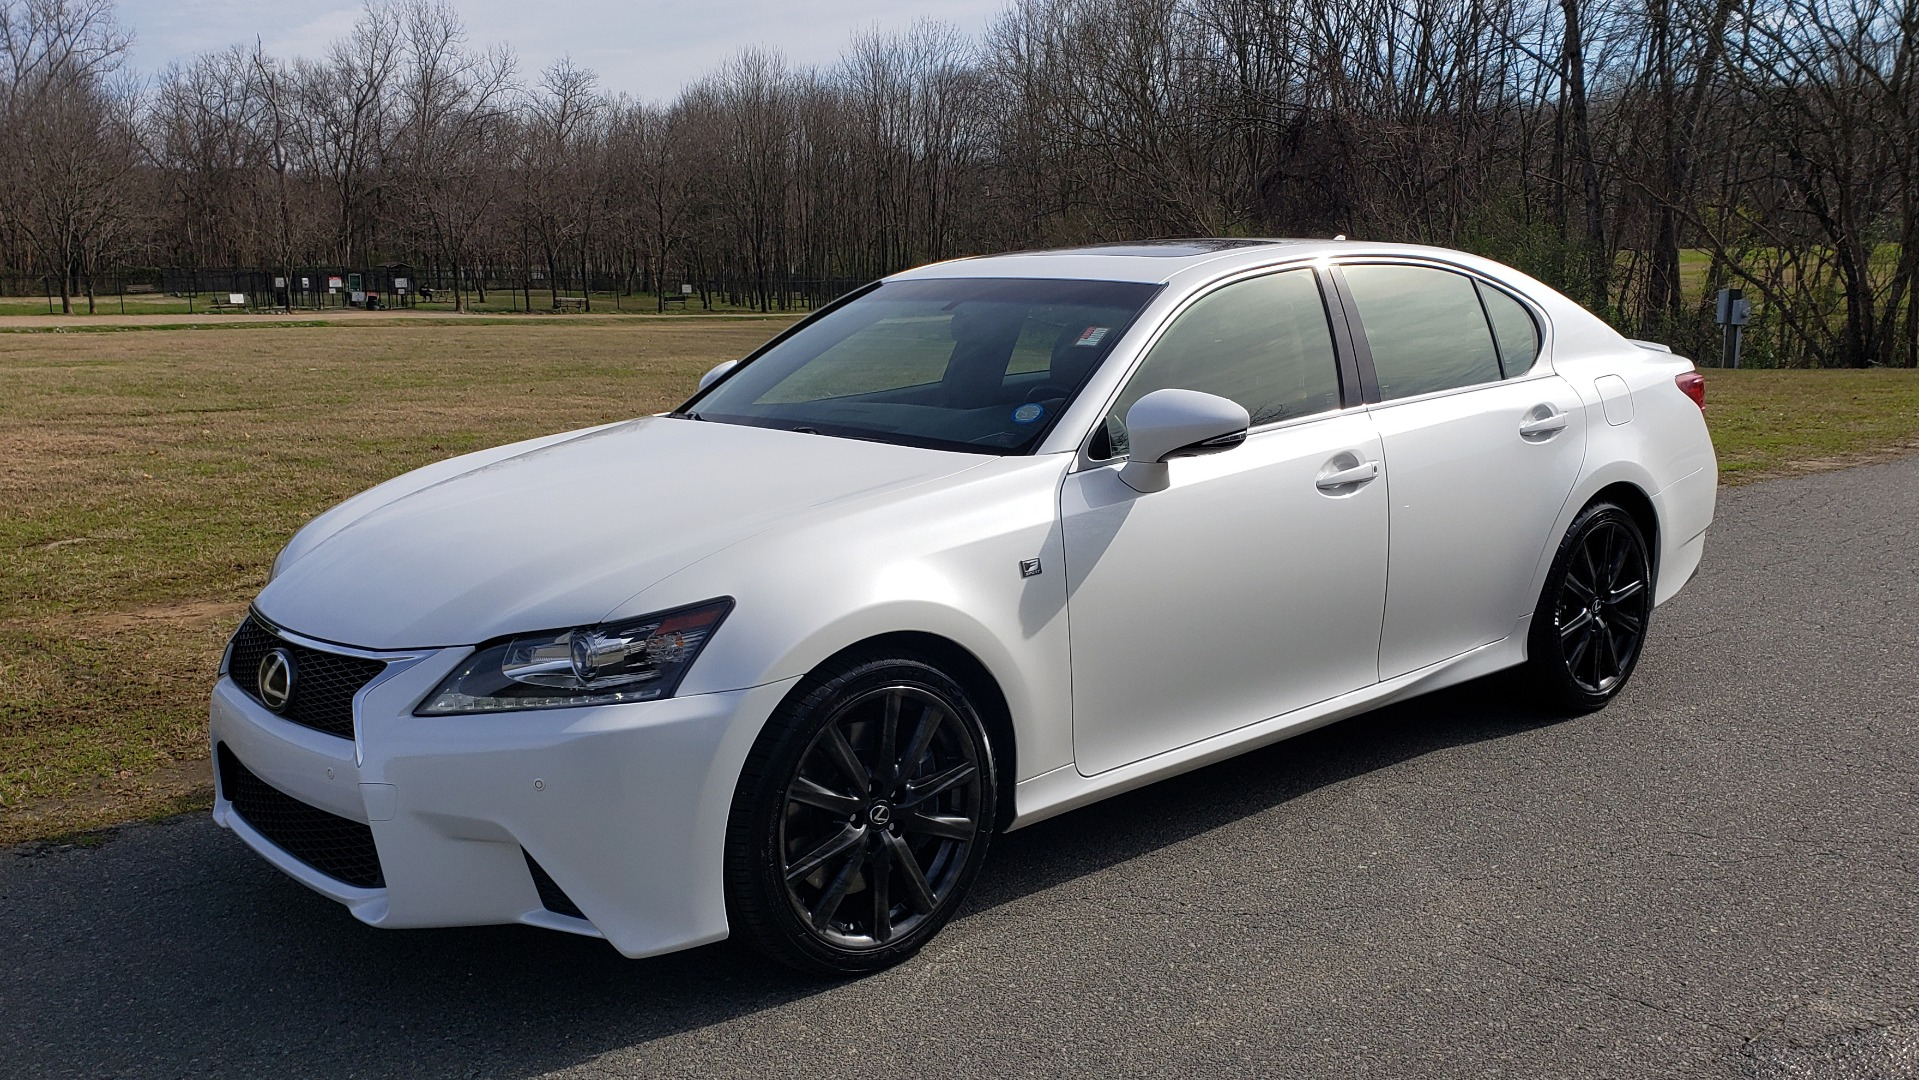 Used 2013 Lexus GS 350 F-SPORT / NAV / SUNROOF / BSM / PRK ASST / REARVIEW for sale Sold at Formula Imports in Charlotte NC 28227 1